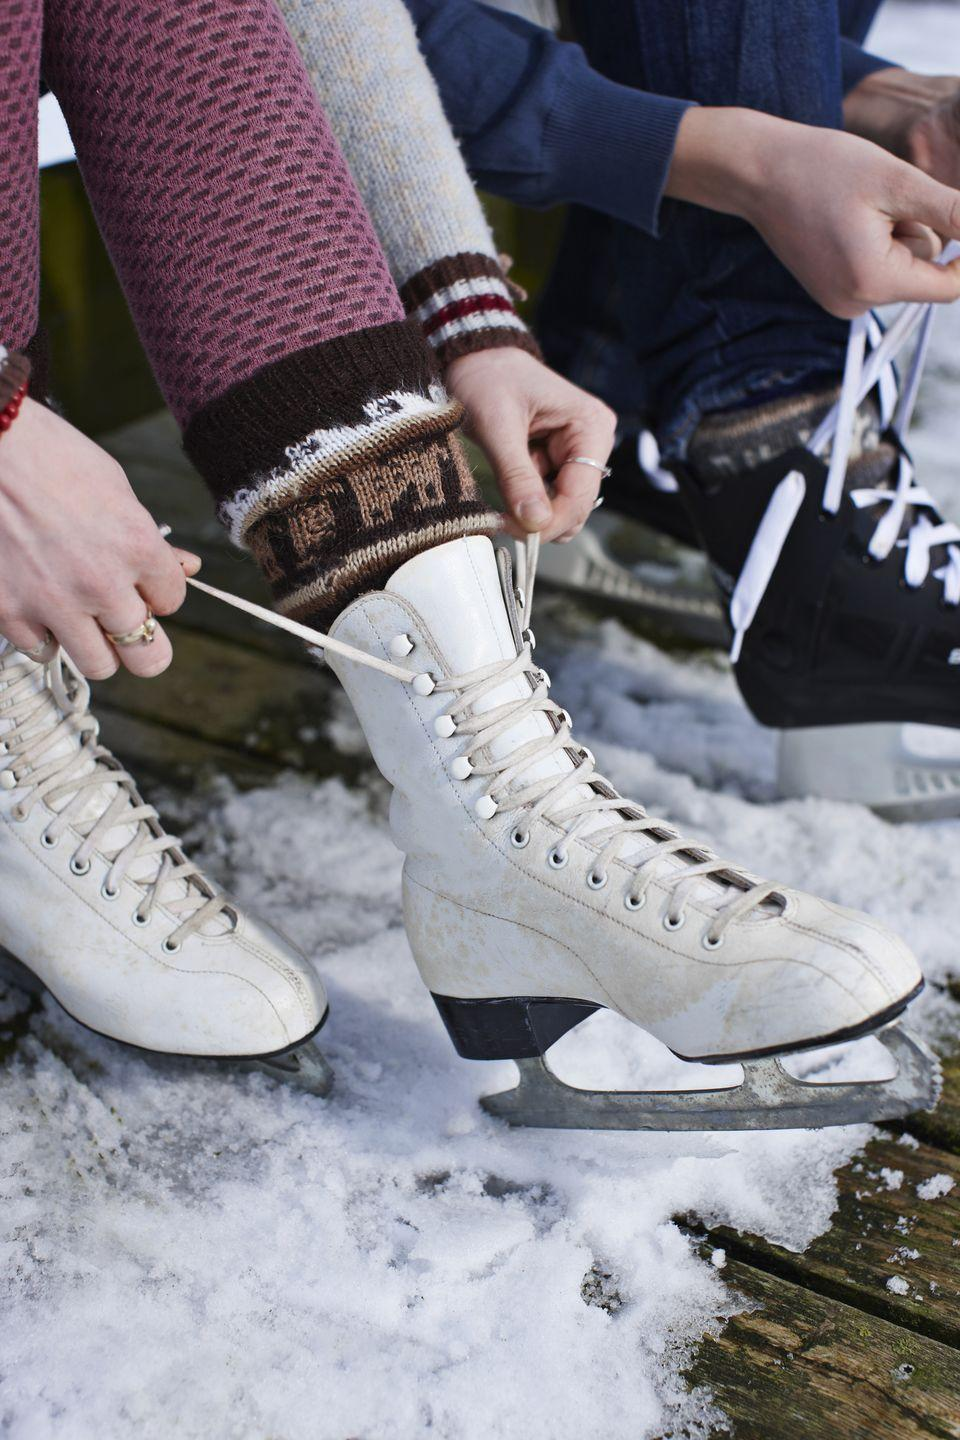 """<p>Lace up the skates and get ready to hit the ice! Skaters of all levels will have a blast gliding around and around. If you live in a winter wonderland, you can <a href=""""https://www.amazon.com/Skate-Anytime-Synthetic-Ice-Starter/dp/B076F6QR8S?tag=syn-yahoo-20&ascsubtag=%5Bartid%7C10050.g.2218%5Bsrc%7Cyahoo-us"""" rel=""""nofollow noopener"""" target=""""_blank"""" data-ylk=""""slk:build your own rink"""" class=""""link rapid-noclick-resp"""">build your own rink</a> or go out to a pond or lake—just make sure it's safe beforehand. If your winter months are on the warmer side, book some time at a local rink.</p>"""